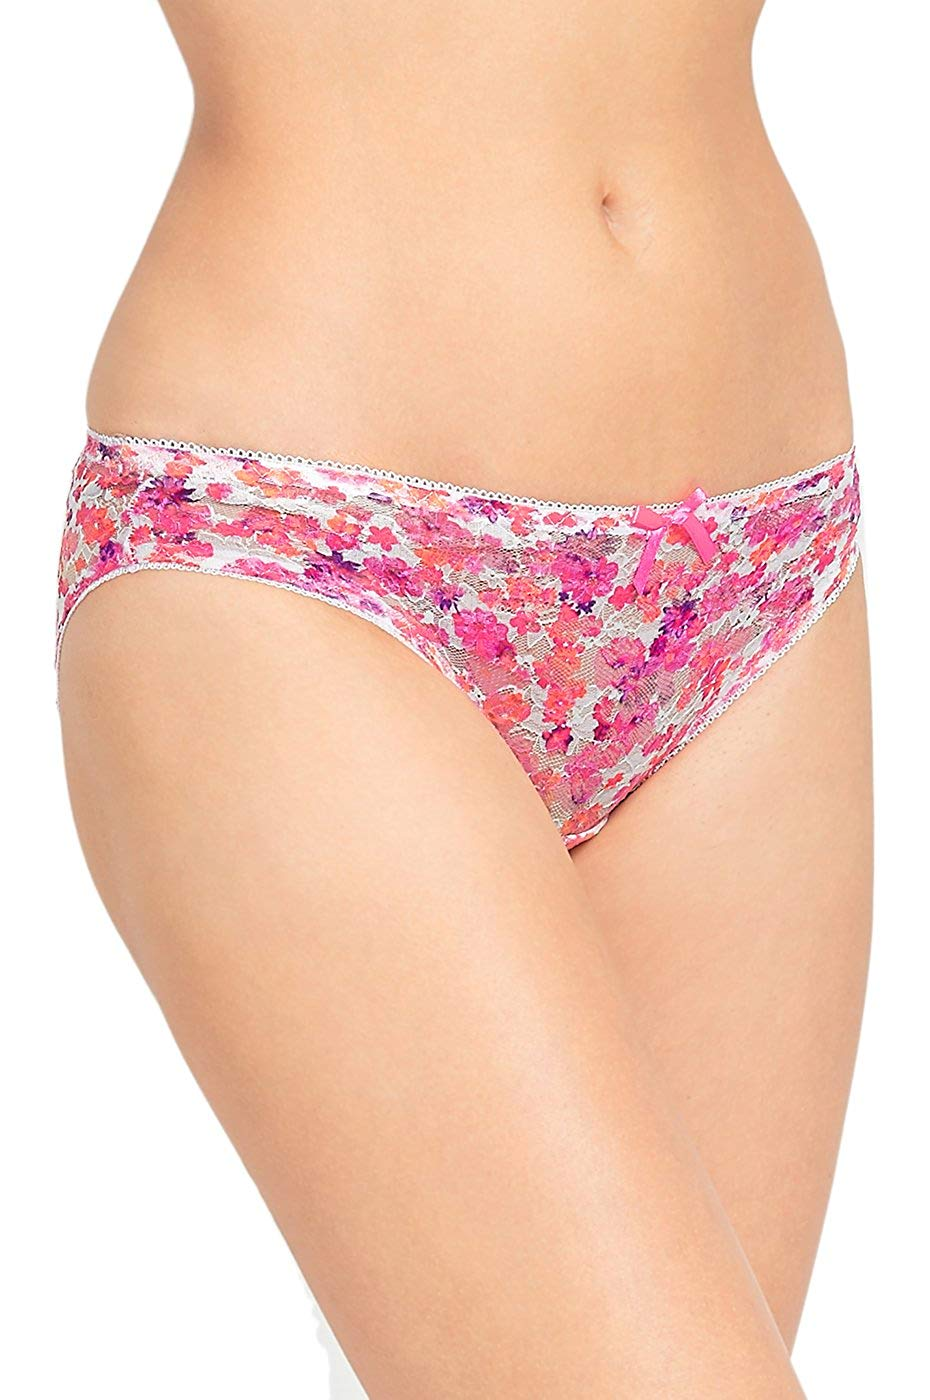 f959c154461eb Get Quotations · Mamia Women s Colorful Sheer Floral Lace Bikini Panty